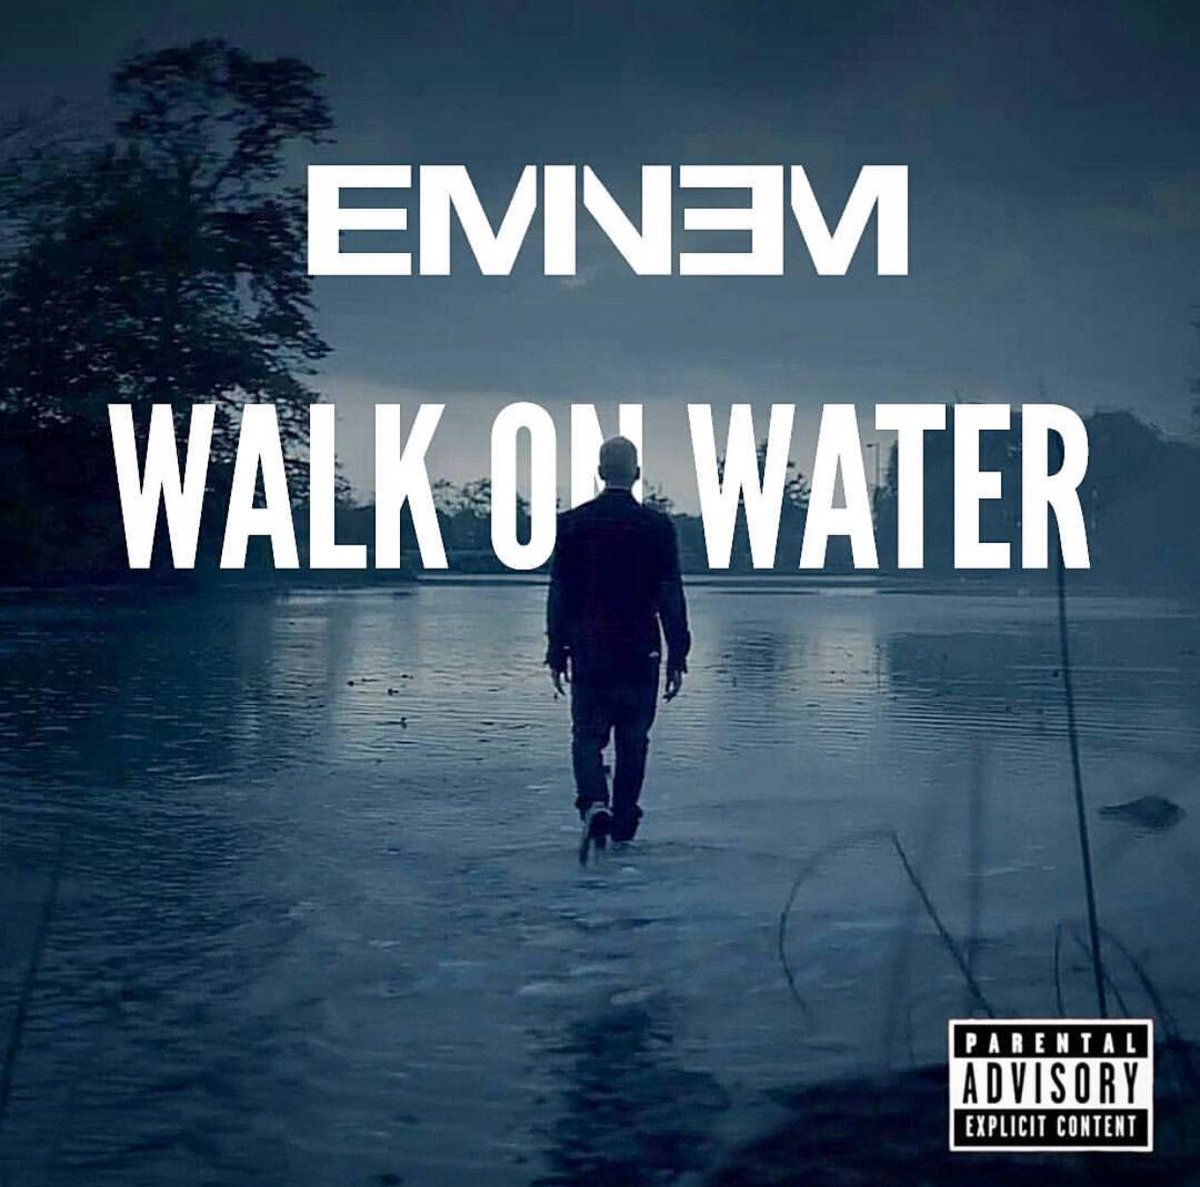 Tune Of The Day: Eminem - Walk On Water